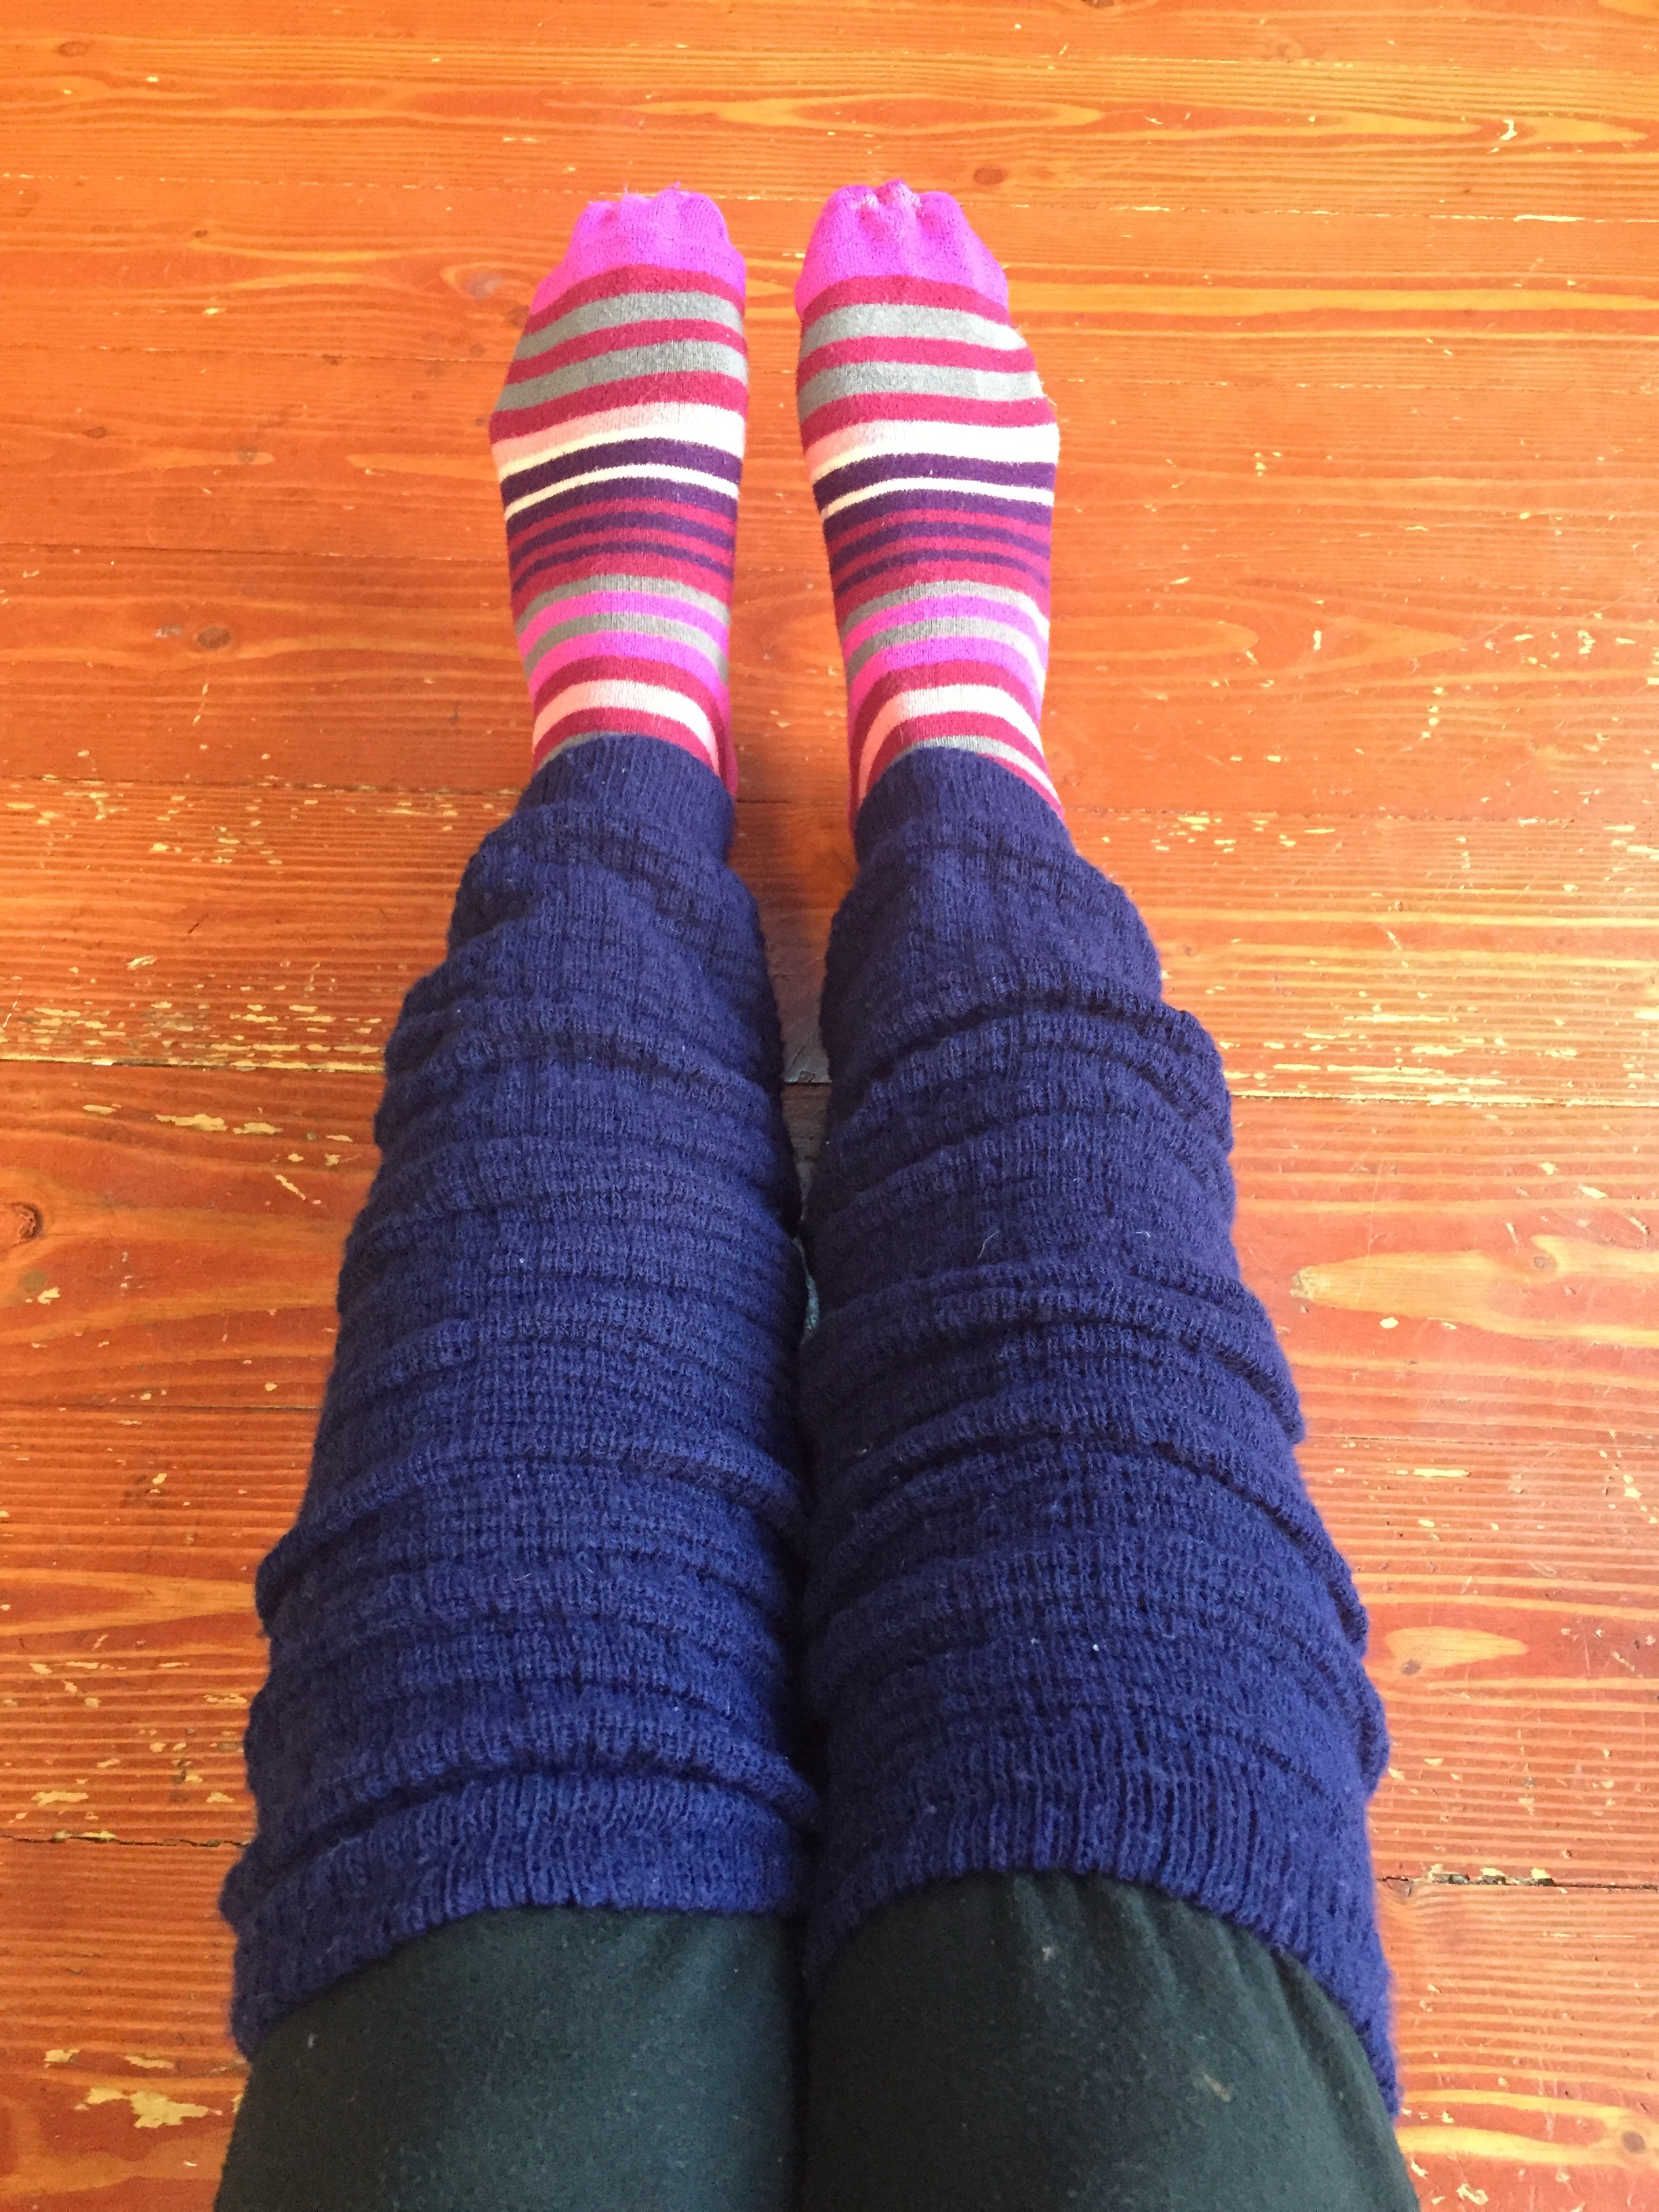 American Apparel long leg warmer in navy worn over striped socks and black joggers